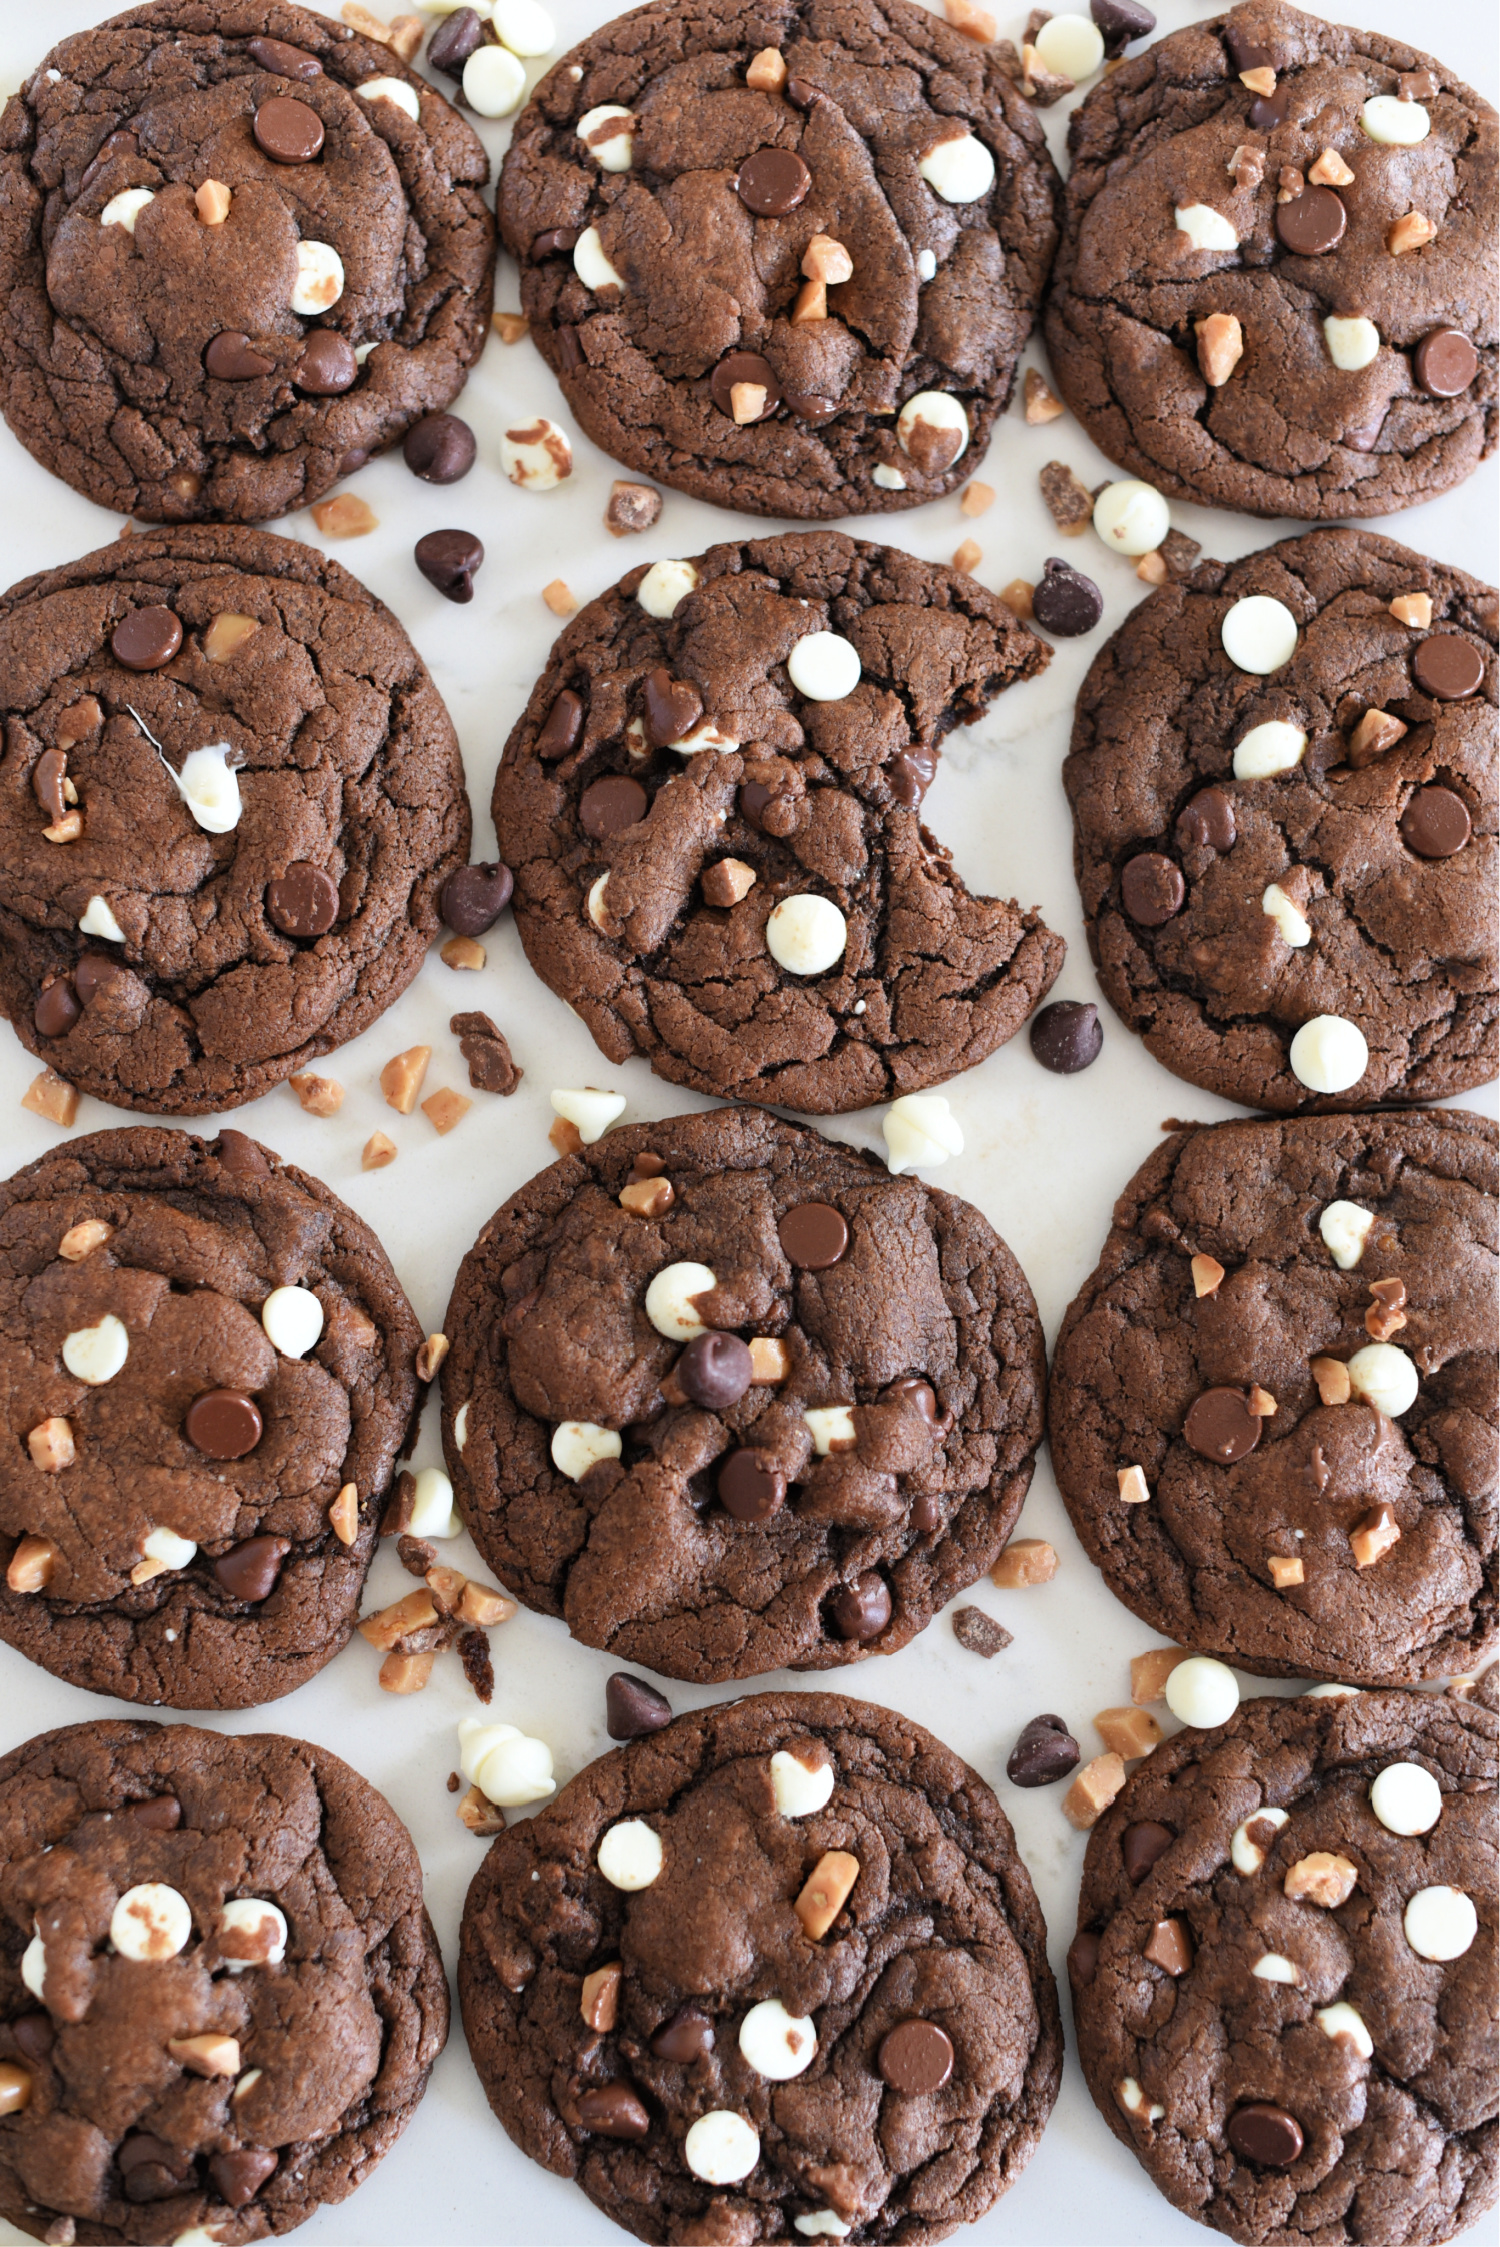 Triple Chocolate & Toffee Cookies: This chocolate chip cookies recipe has a chocolate base, white chips, chocolate chips, and toffee bits and they taste amazing!